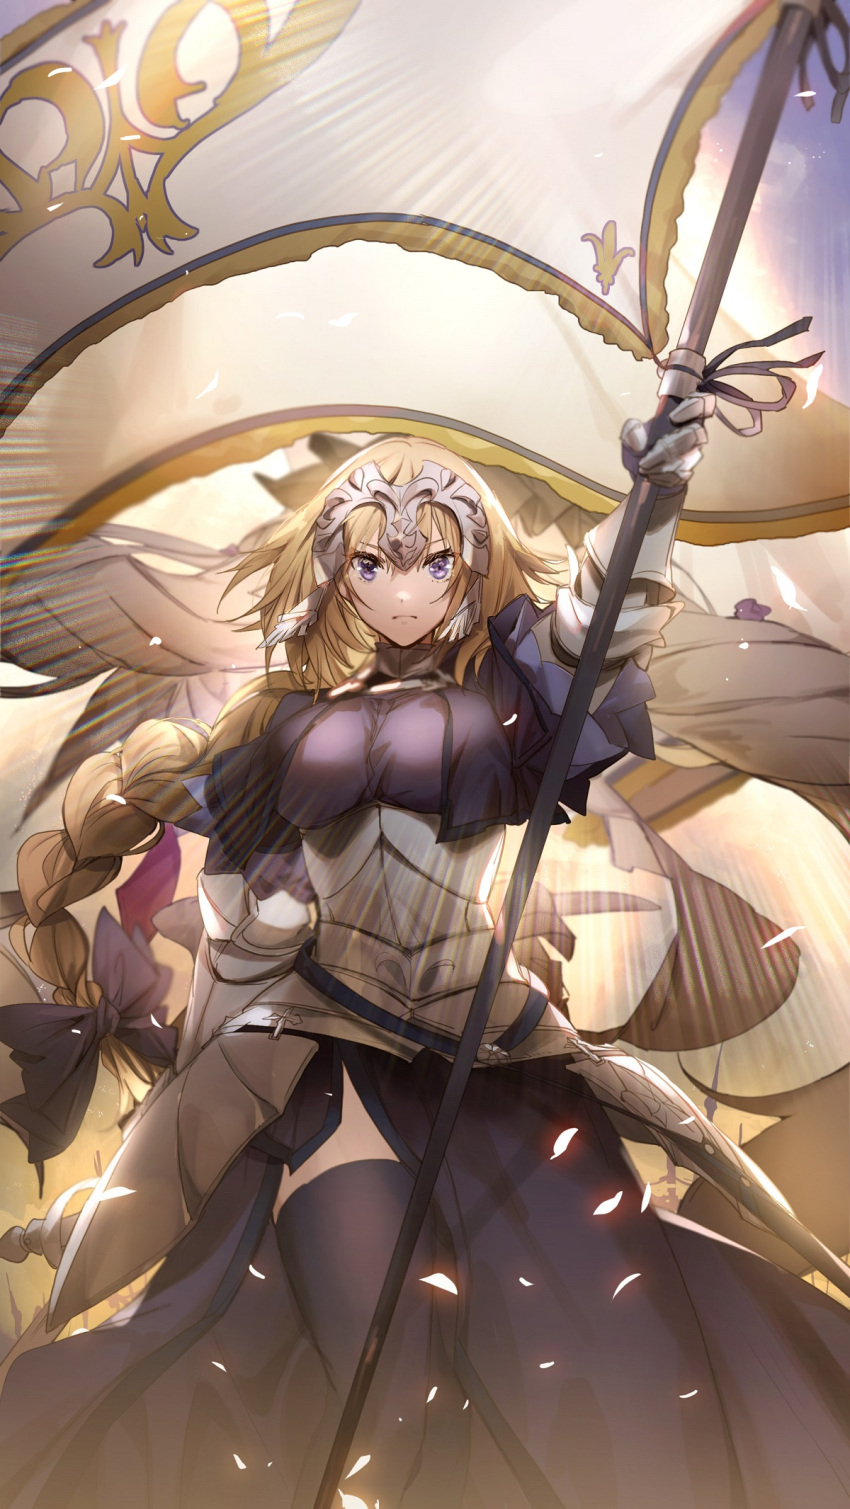 1girl arm_up armor armored_dress bangs banner black_legwear blonde_hair bow braid breasts bridal_gauntlets capelet closed_mouth dress fate/grand_order fate_(series) faulds flag gauntlets gloves glowing_petals hair_bow hair_ribbon headpiece highres holding holding_sword holding_weapon jeanne_d'arc_(fate) jeanne_d'arc_(fate)_(all) large_breasts light long_braid looking_at_viewer no-kan petals plackart purple_bow purple_dress purple_legwear ribbon single_braid skirt solo standard_bearer standing sword thigh-highs violet_eyes weapon yellow_background